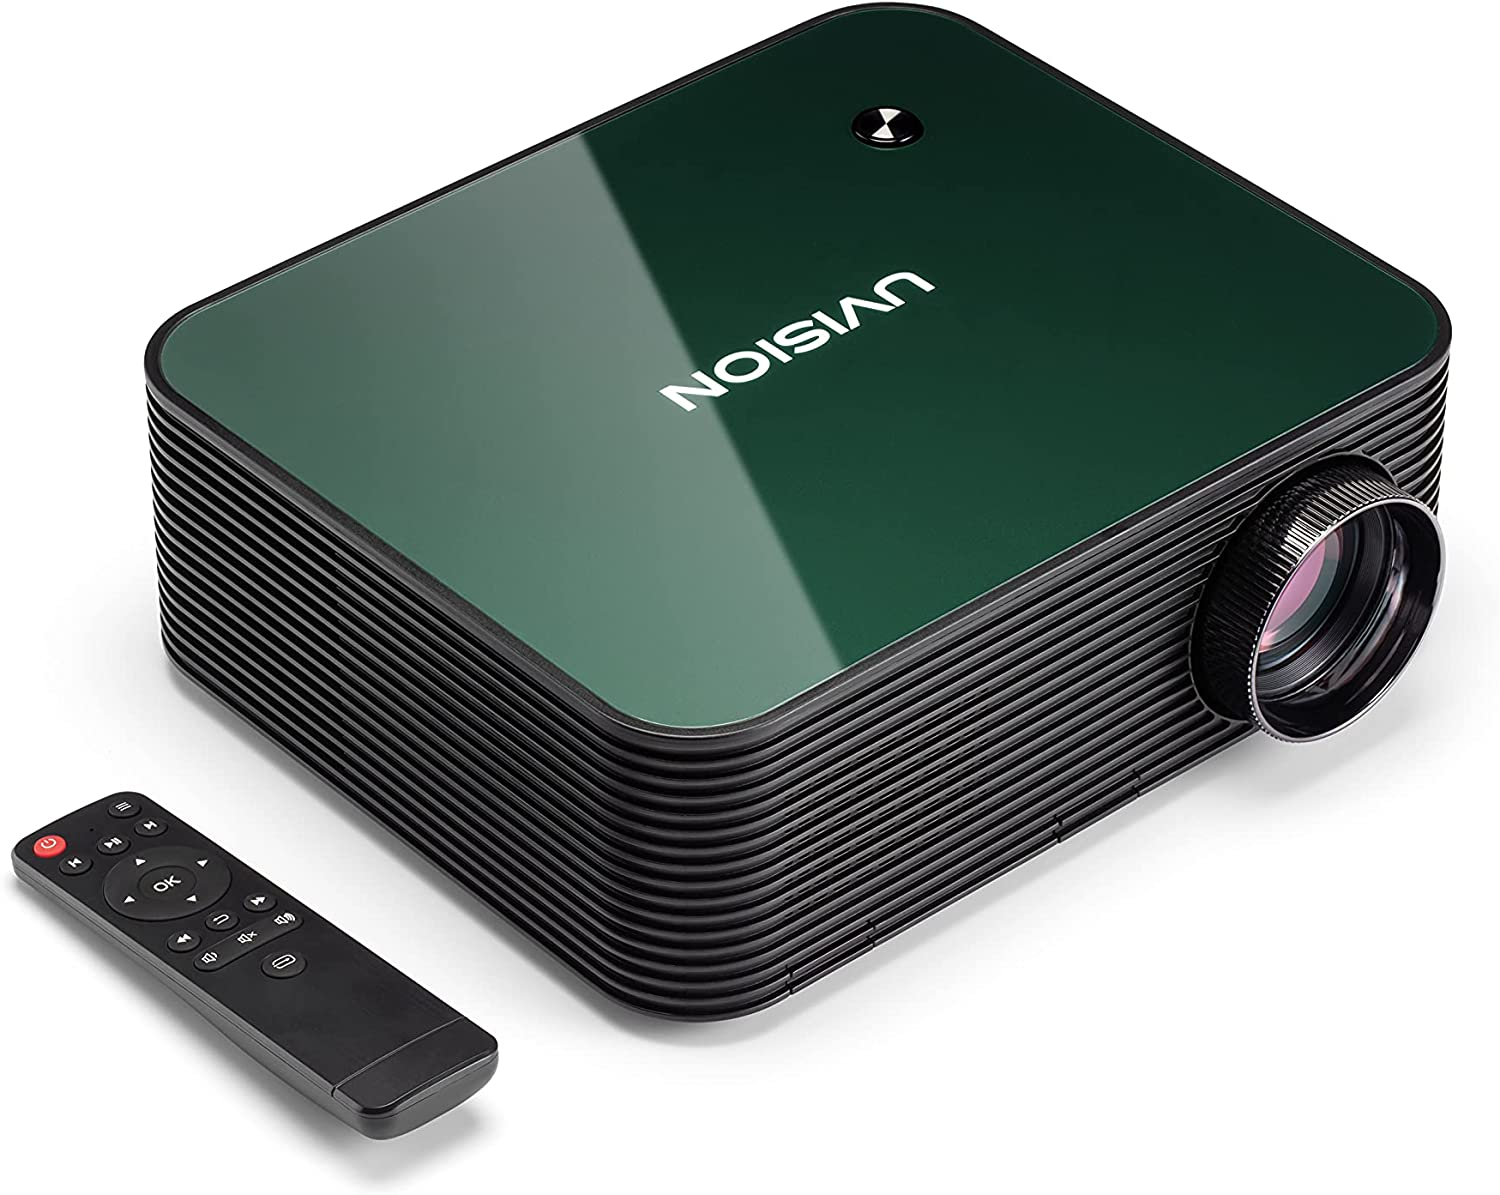 UVISION Native 1080P Projector (1920 x 1080p) Advanced Dustproof & Keystone Correction Design Extend Lifetime, Home & Office LCD Video Projector, Compatible: Fire TV Stick, Roku, Laptop, Tablets, PS5